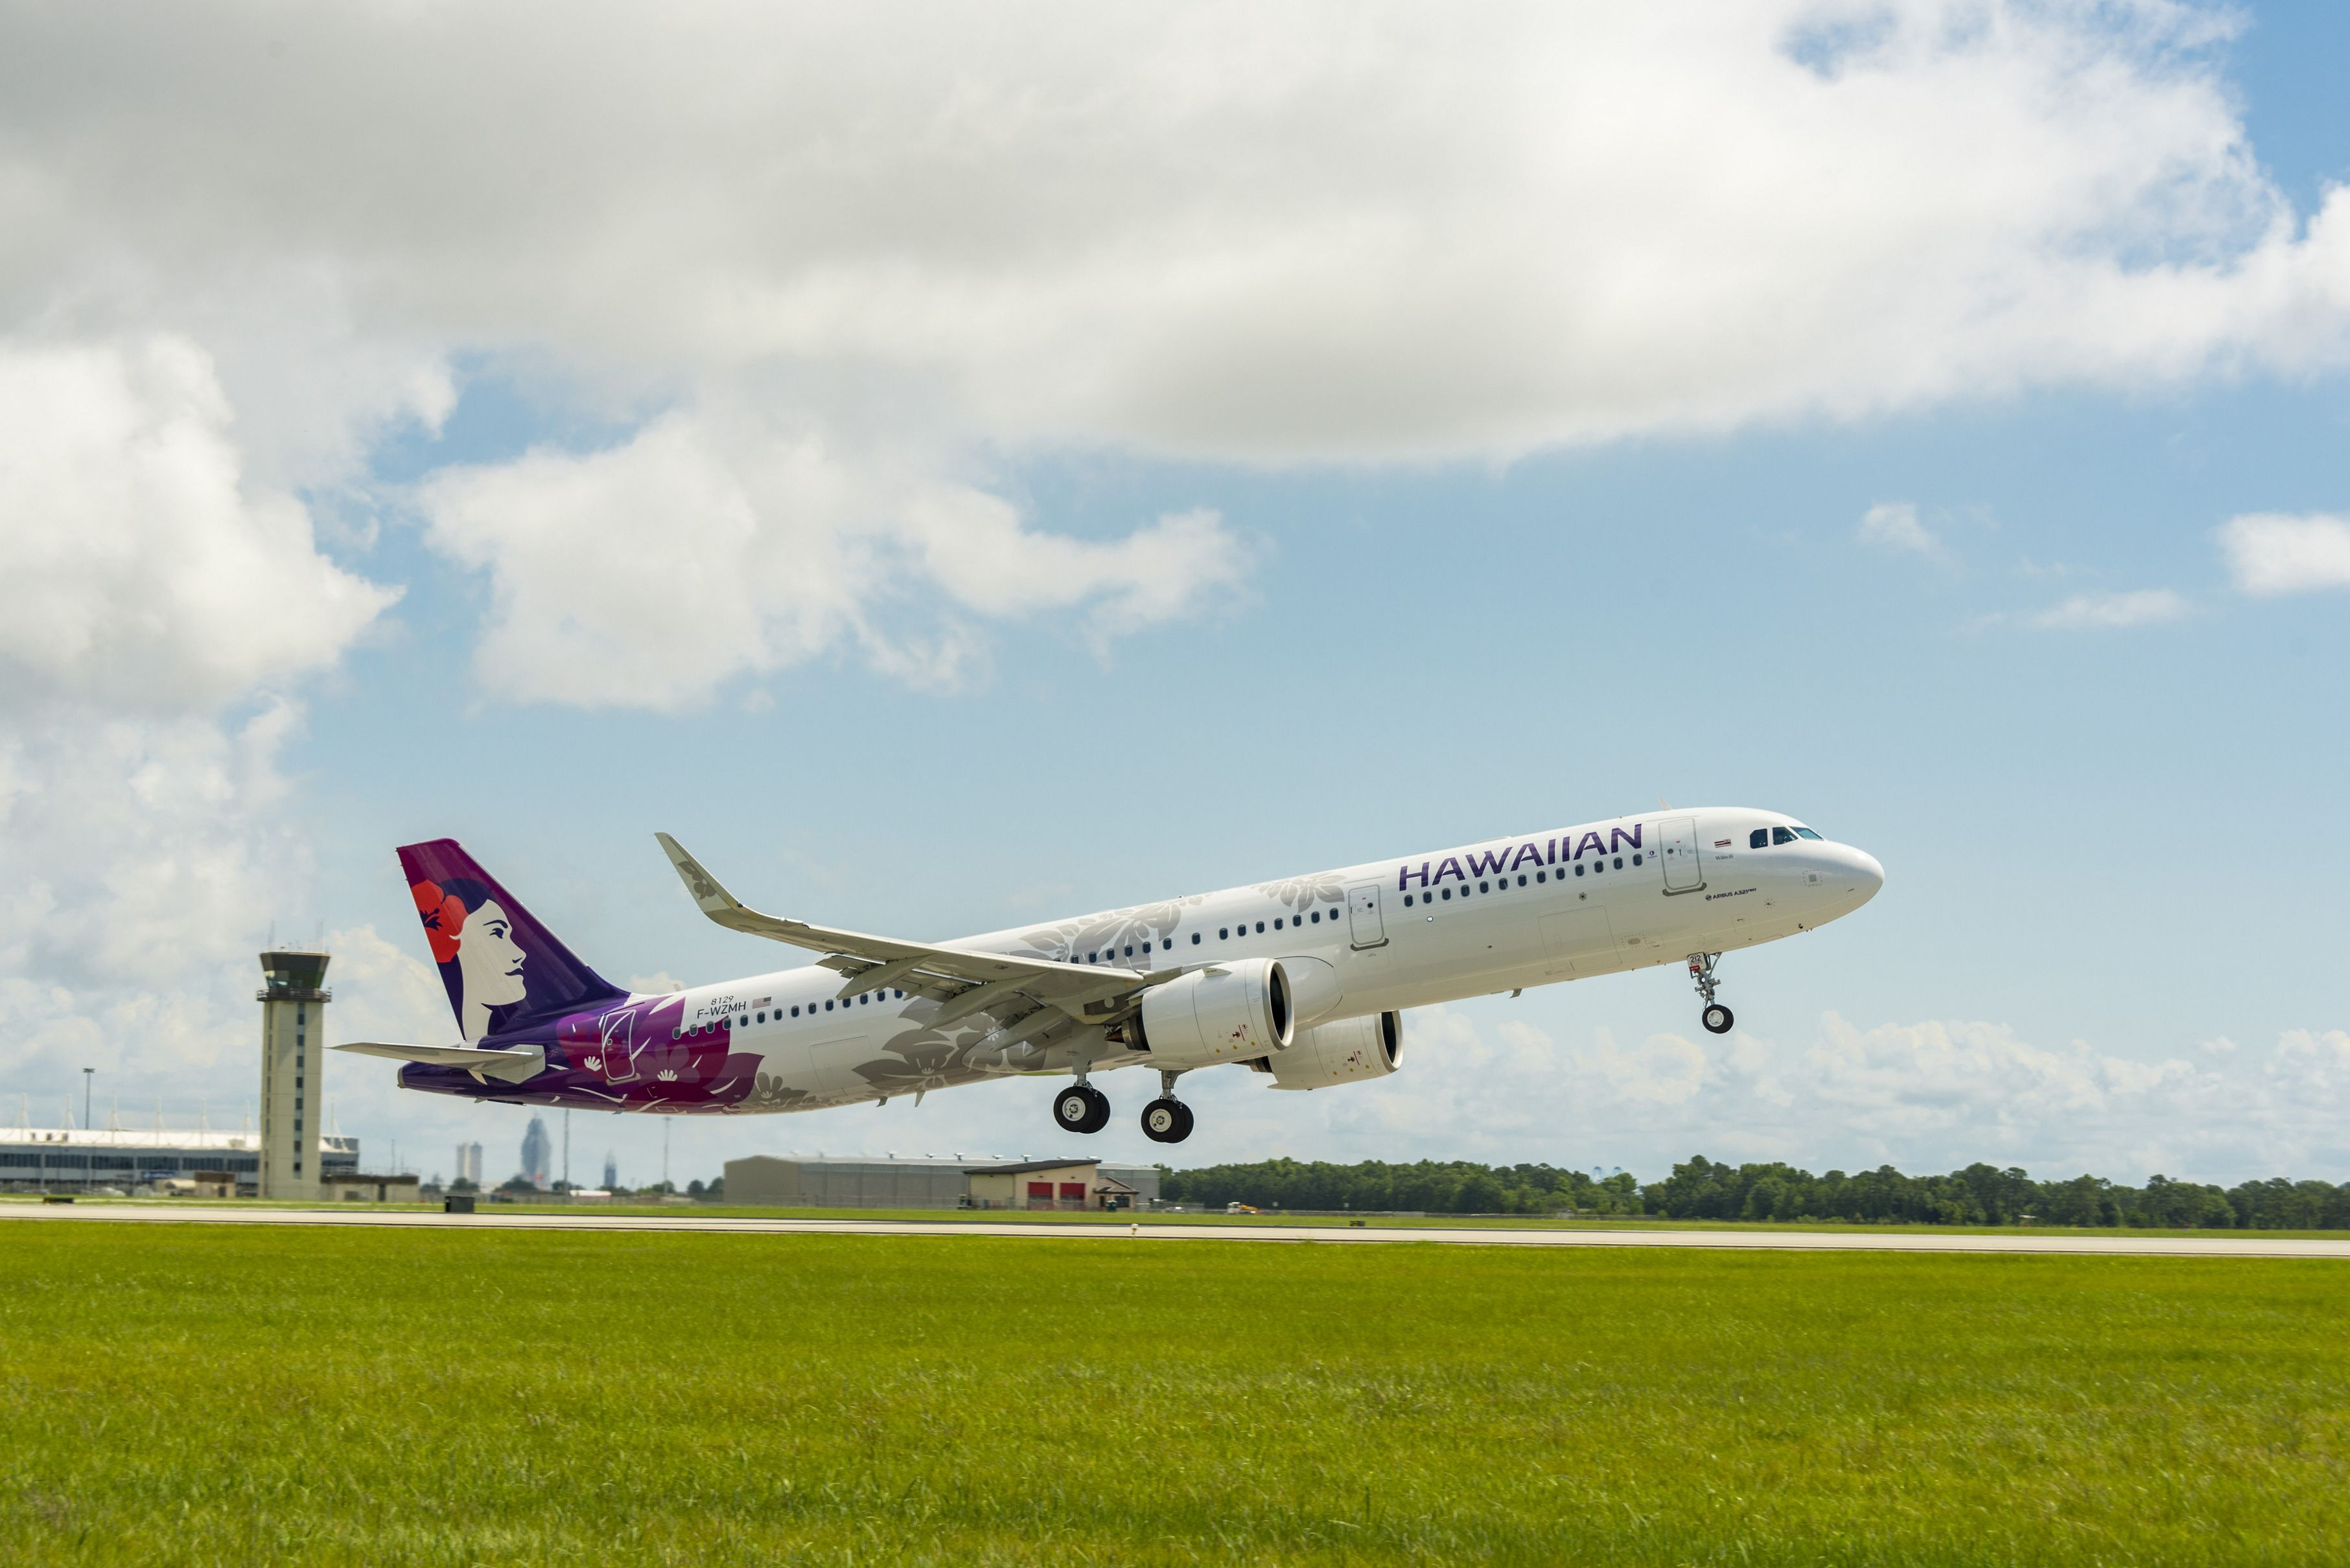 Hawaiian Airlines to Offer Drive-Through, Pre-Flight COVID-19 Screening